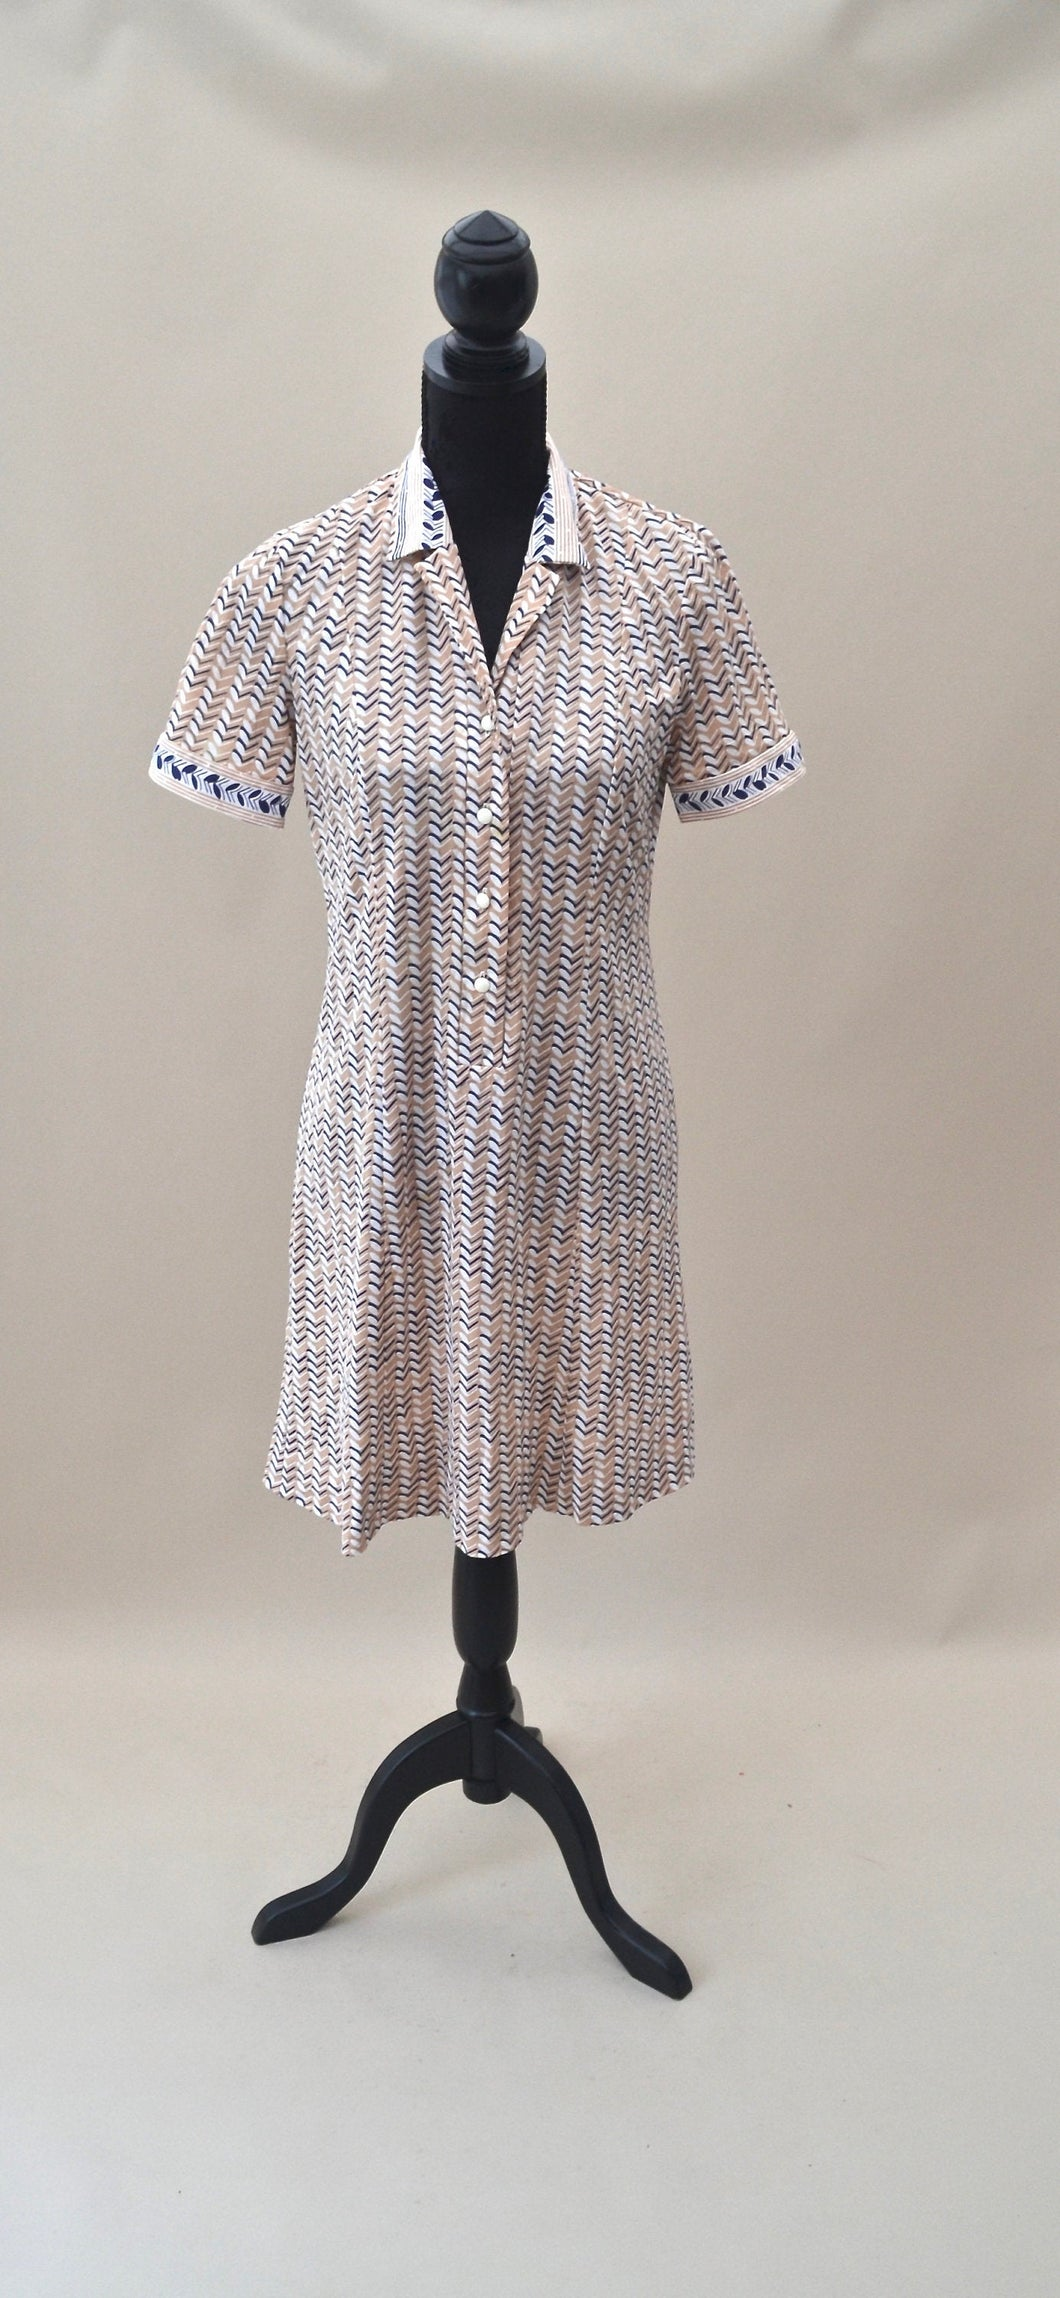 1970s Chevron print dress | Short sleeve dress | Shift dress | Est UK size 12